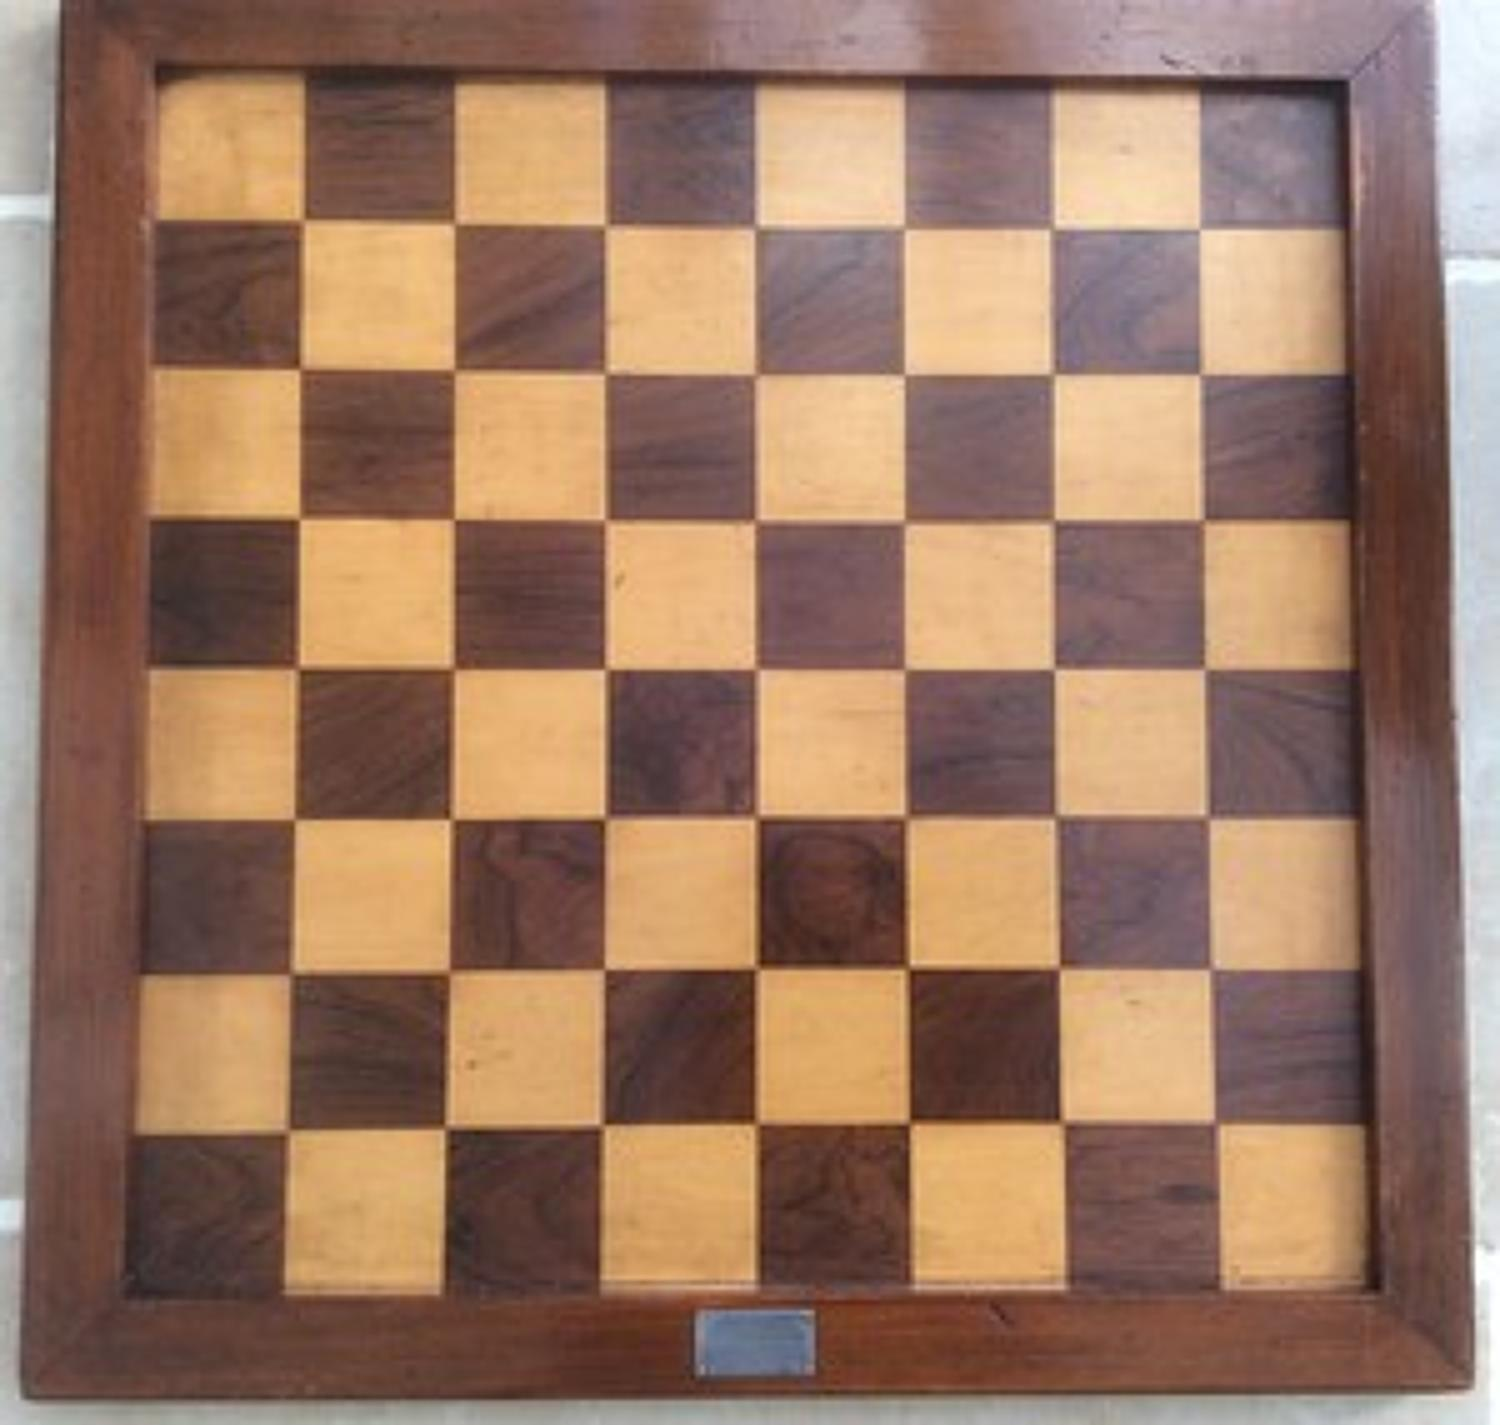 19th century Reform Club trophy chess board.  1st Prize